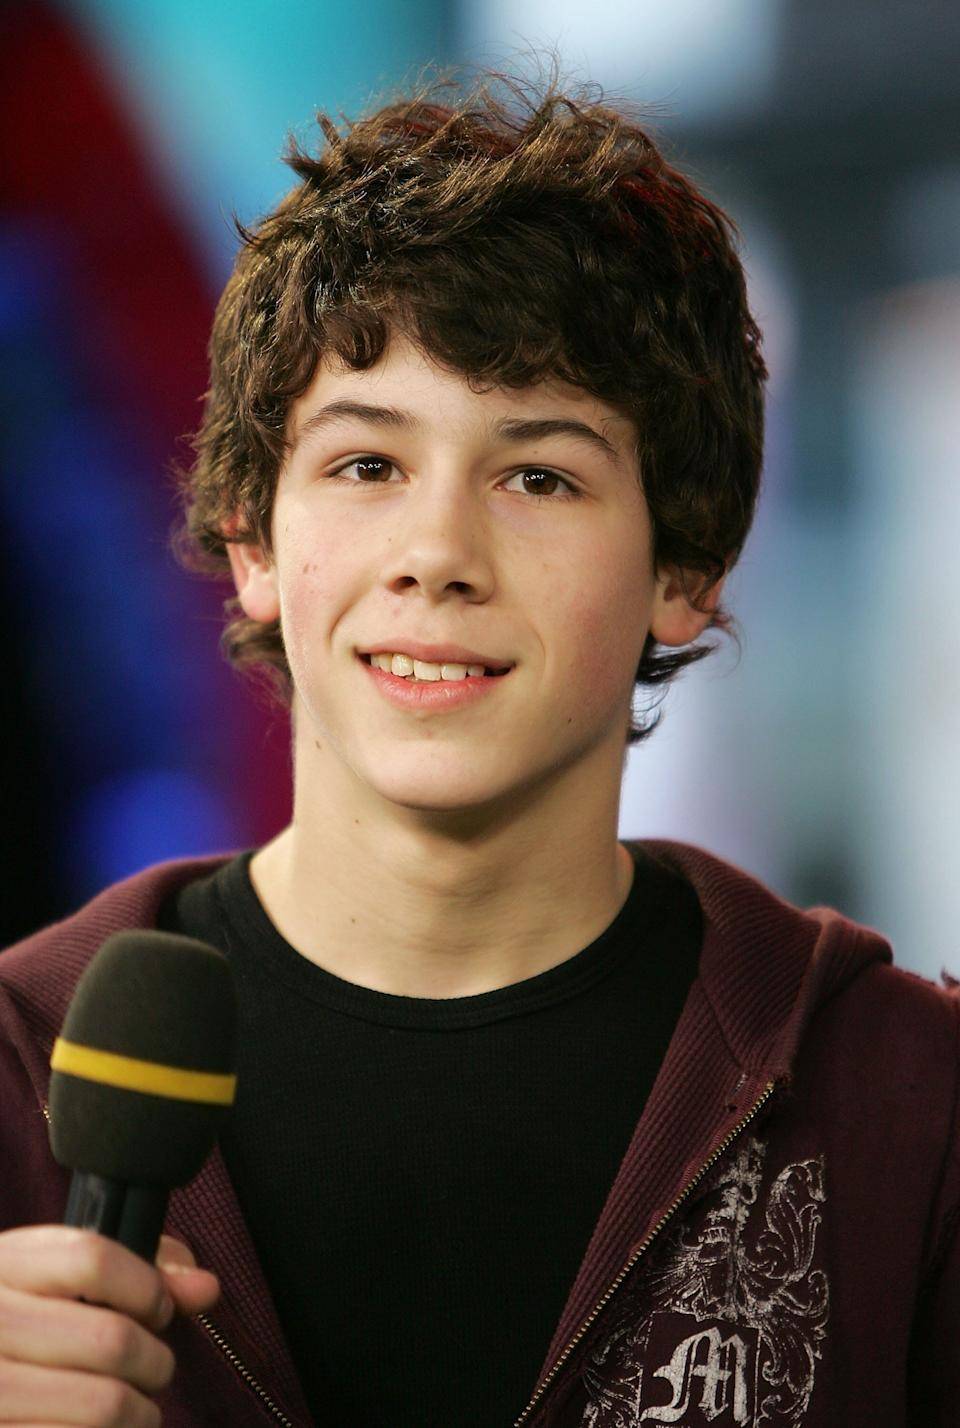 This is how old Nick Jonas, pictured in 2006, was when the media started reporting on his sex life. (Photo: Scott Gries/Getty Images)